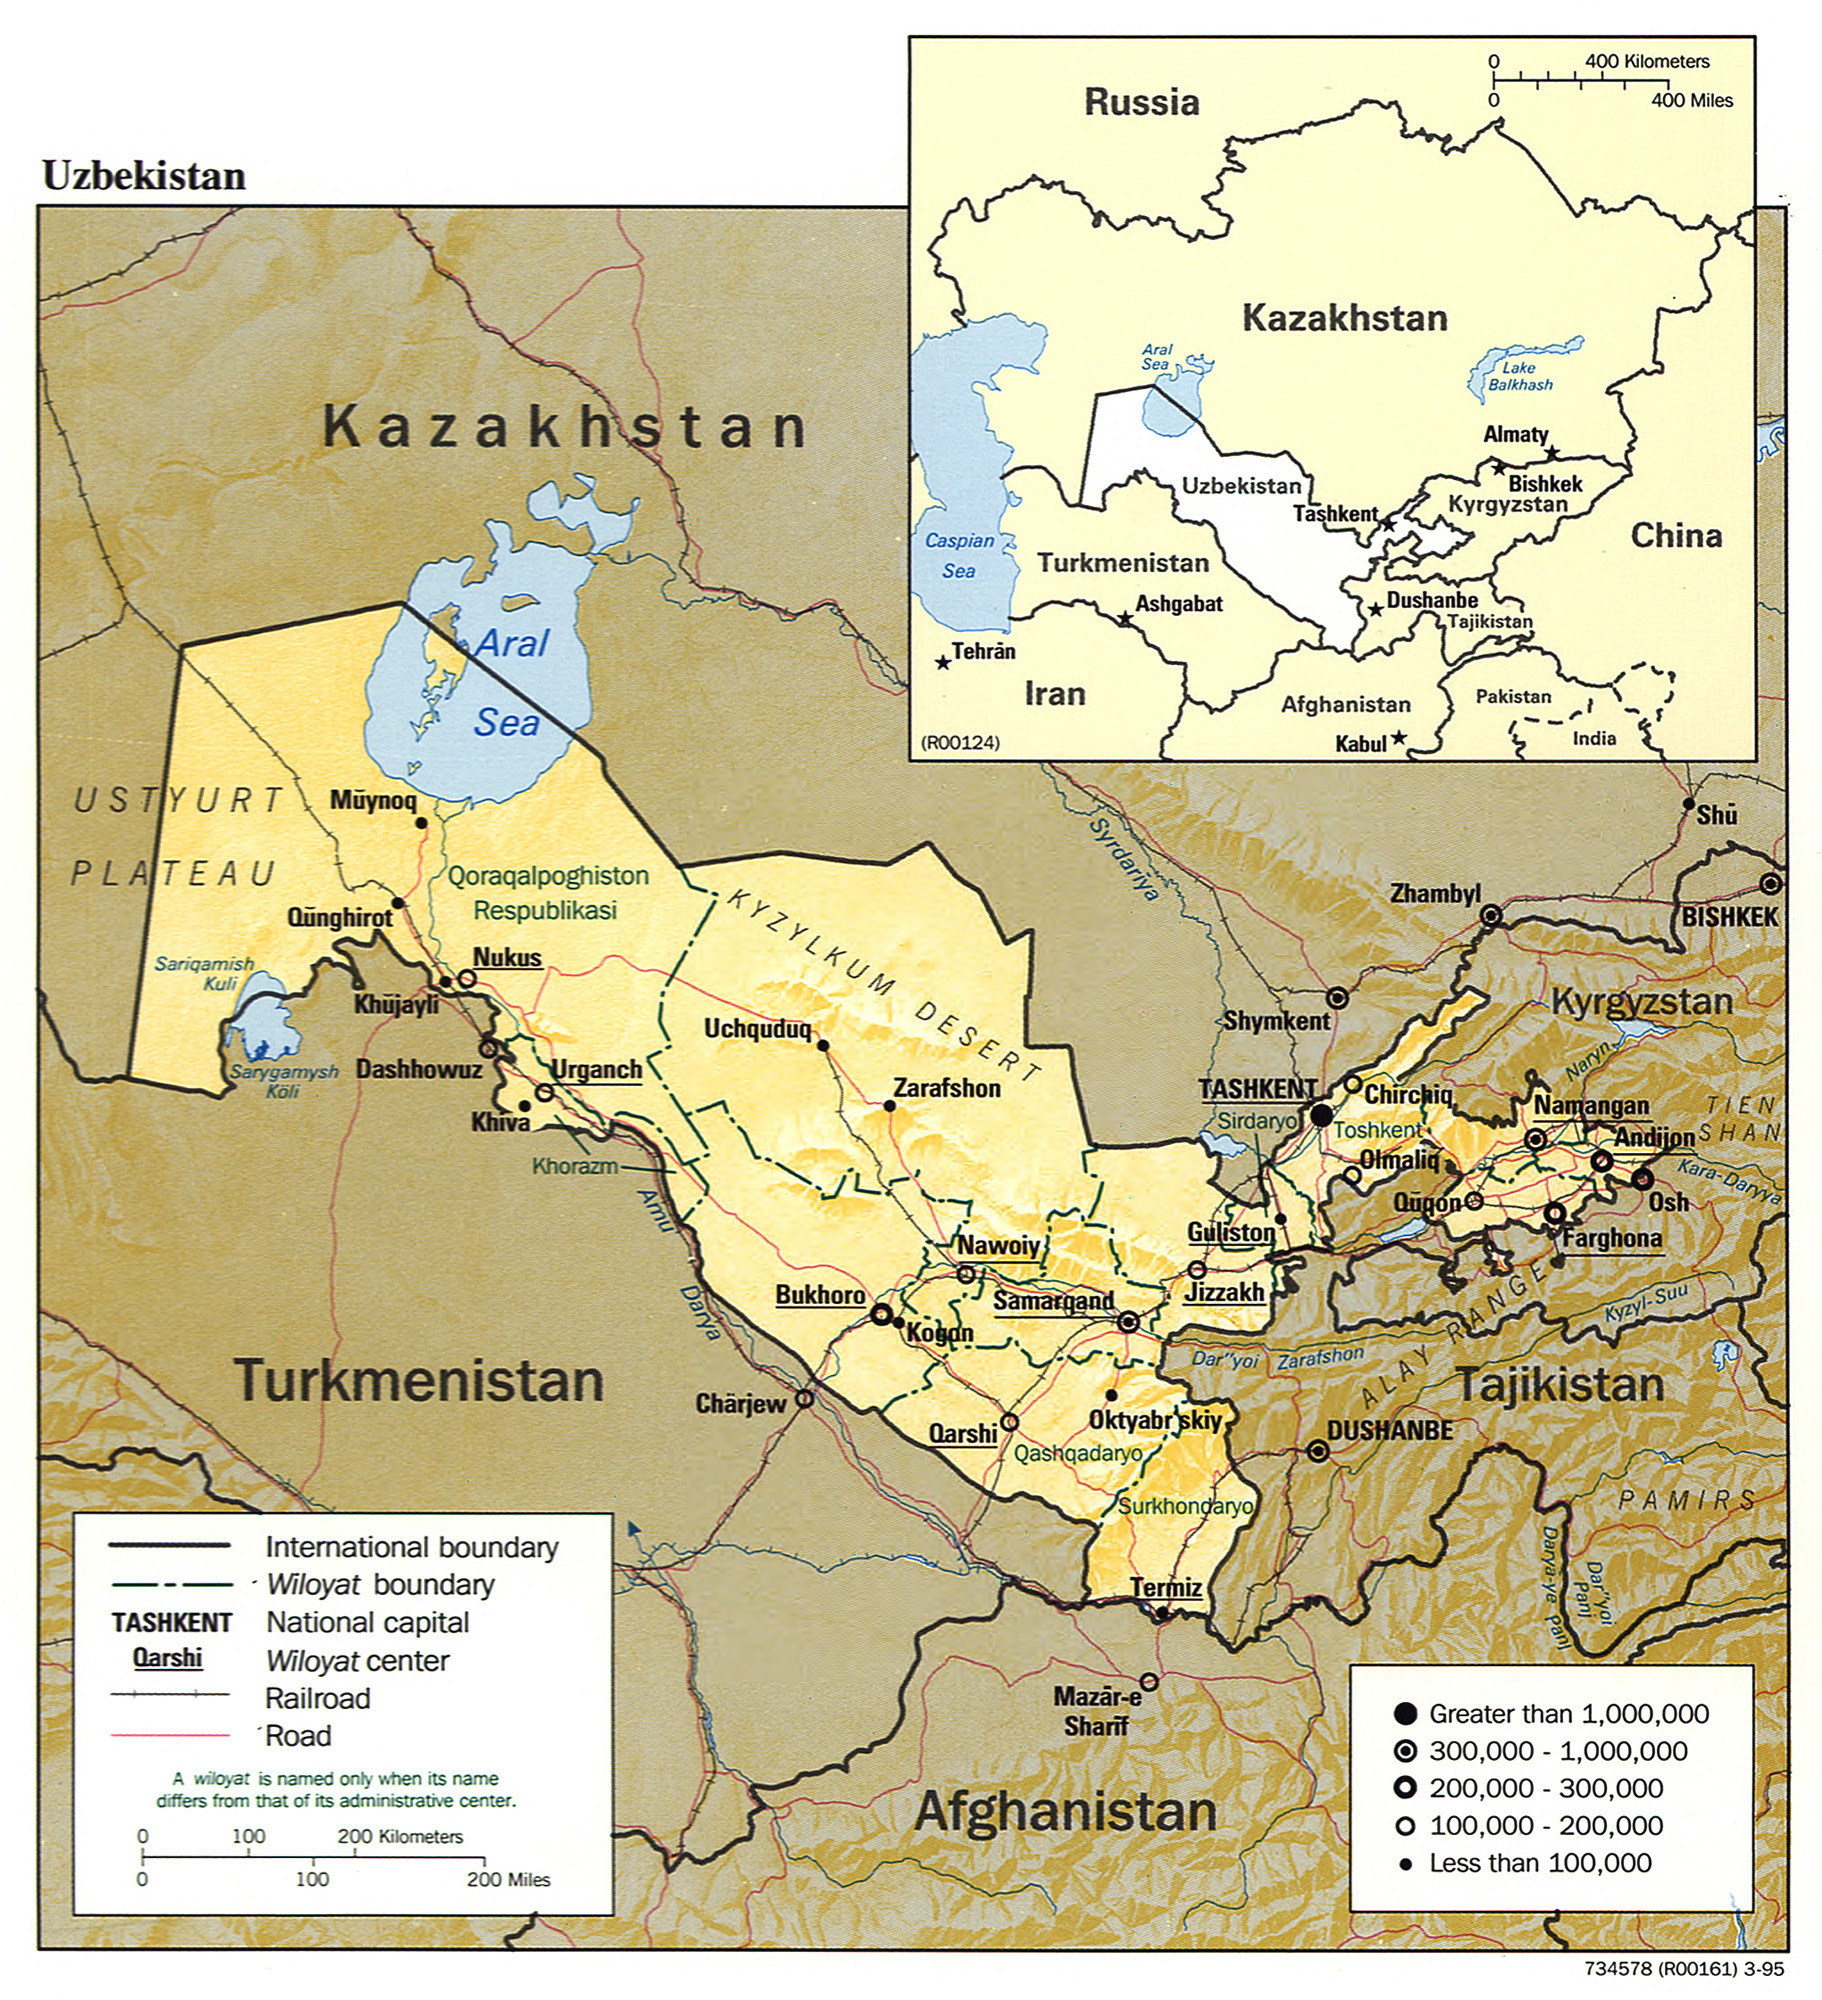 large_detailed_relief_and_political_map_of_uzbekistan